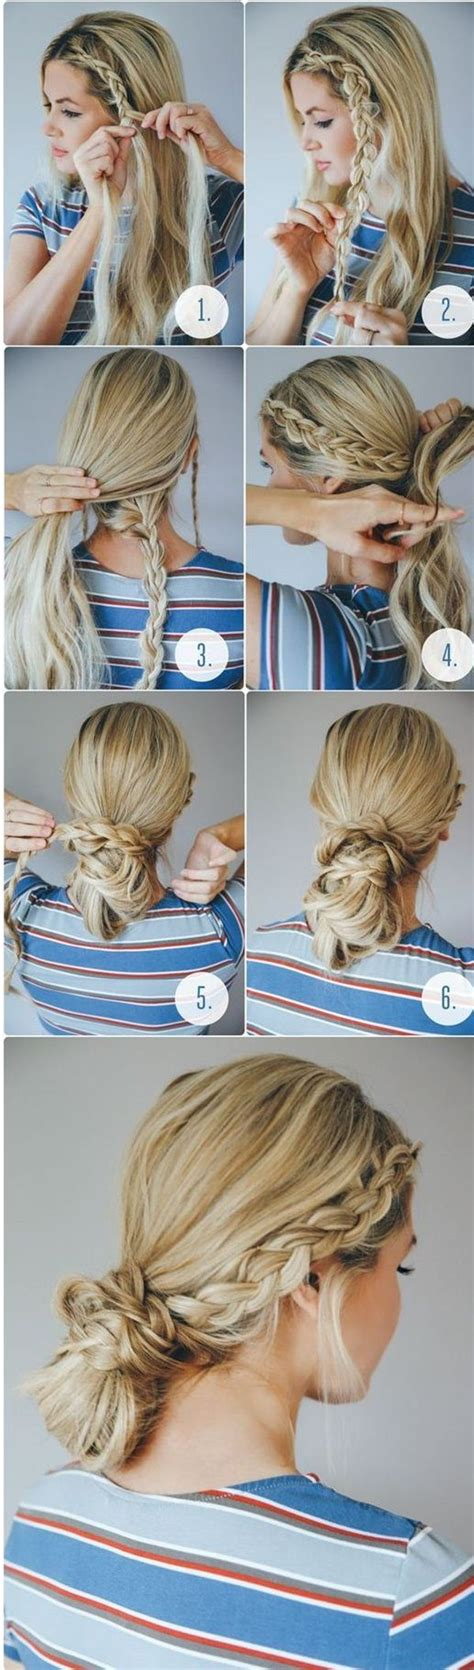 new school hairstyles 2014 1000 ideas about school hairstyles on easy school hairstyles cherry